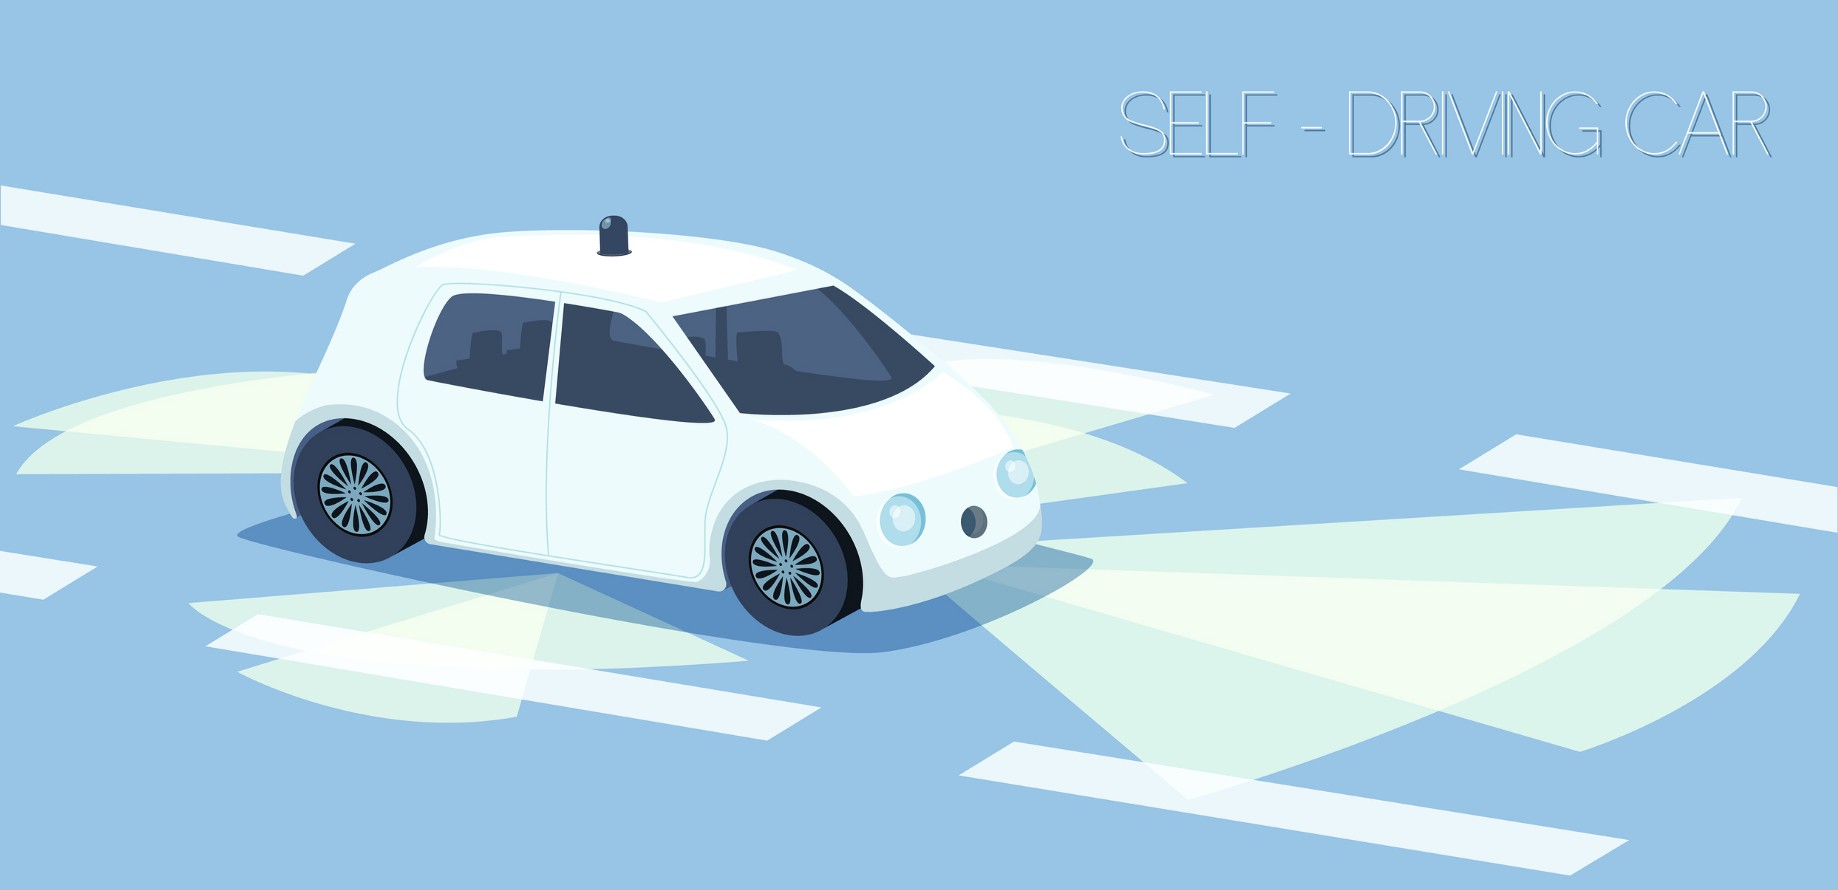 Waymo Launches Self-Driving Car Service - Baum Hedlund Law